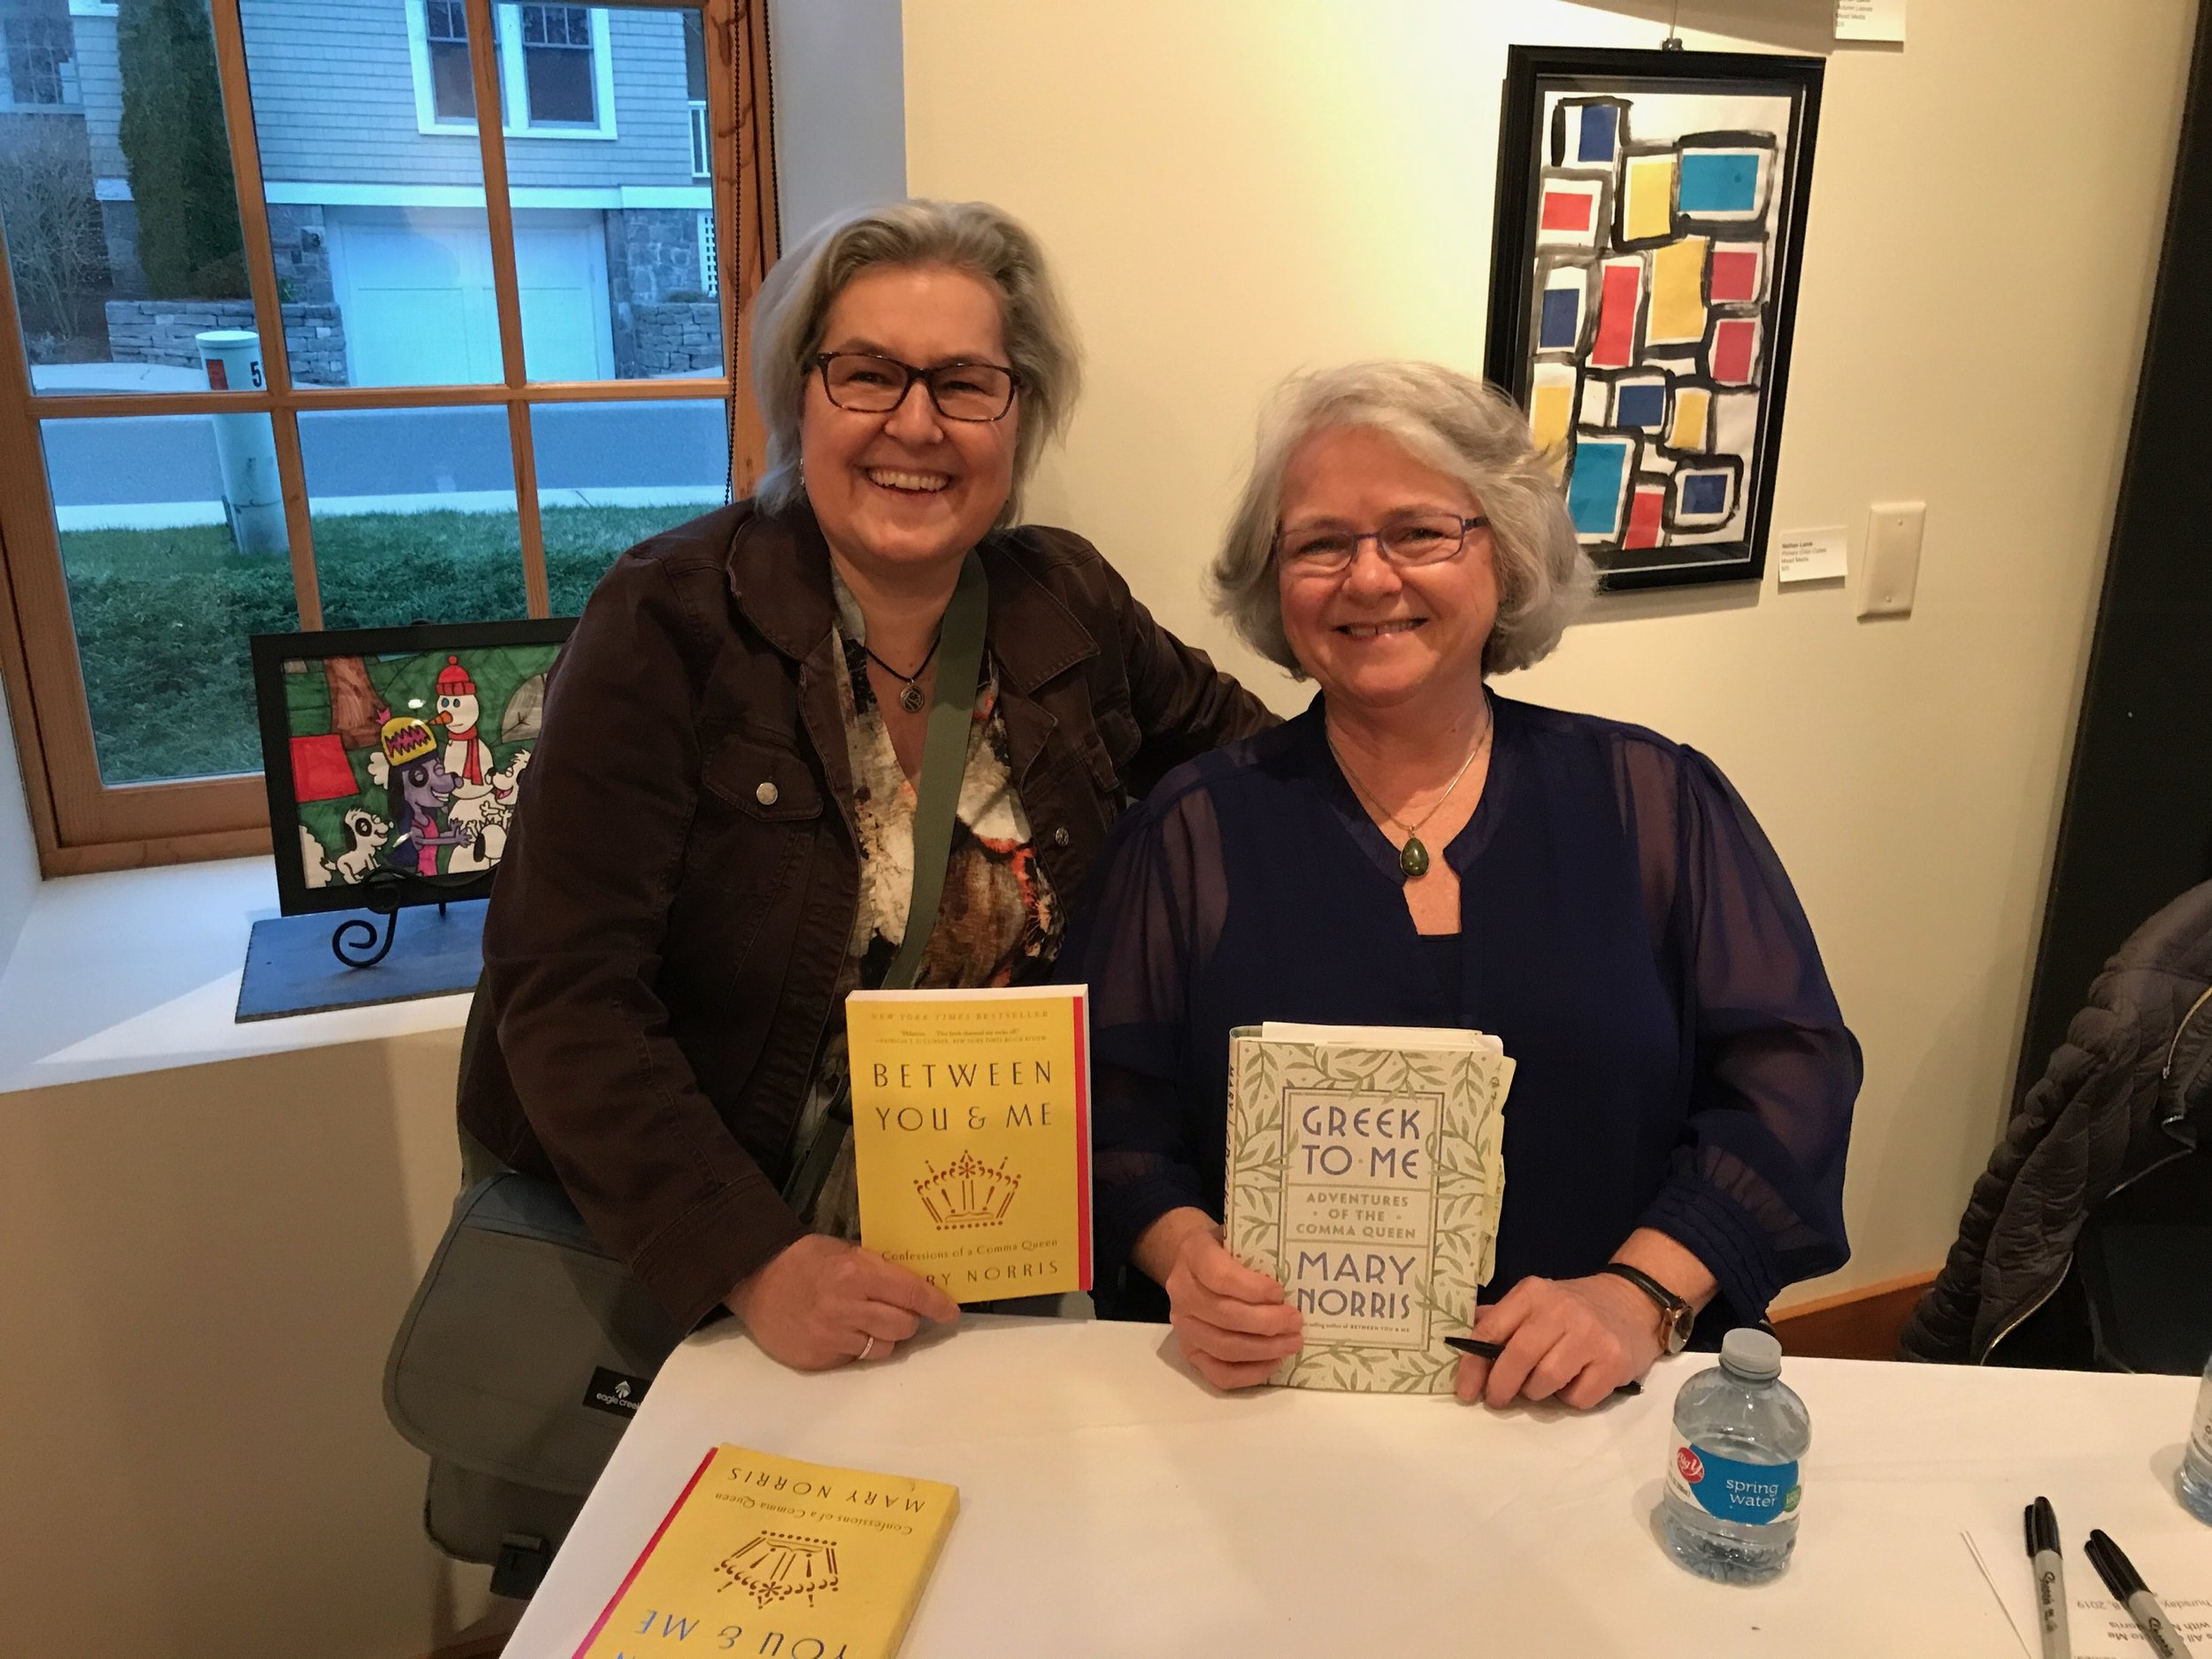 Chris attended an event co-sponsored by  Bank Square Books  and the  Lagrua Center  where Mary Norris discussed her new book  Greek to Me: Adventures of the Comma Queen .